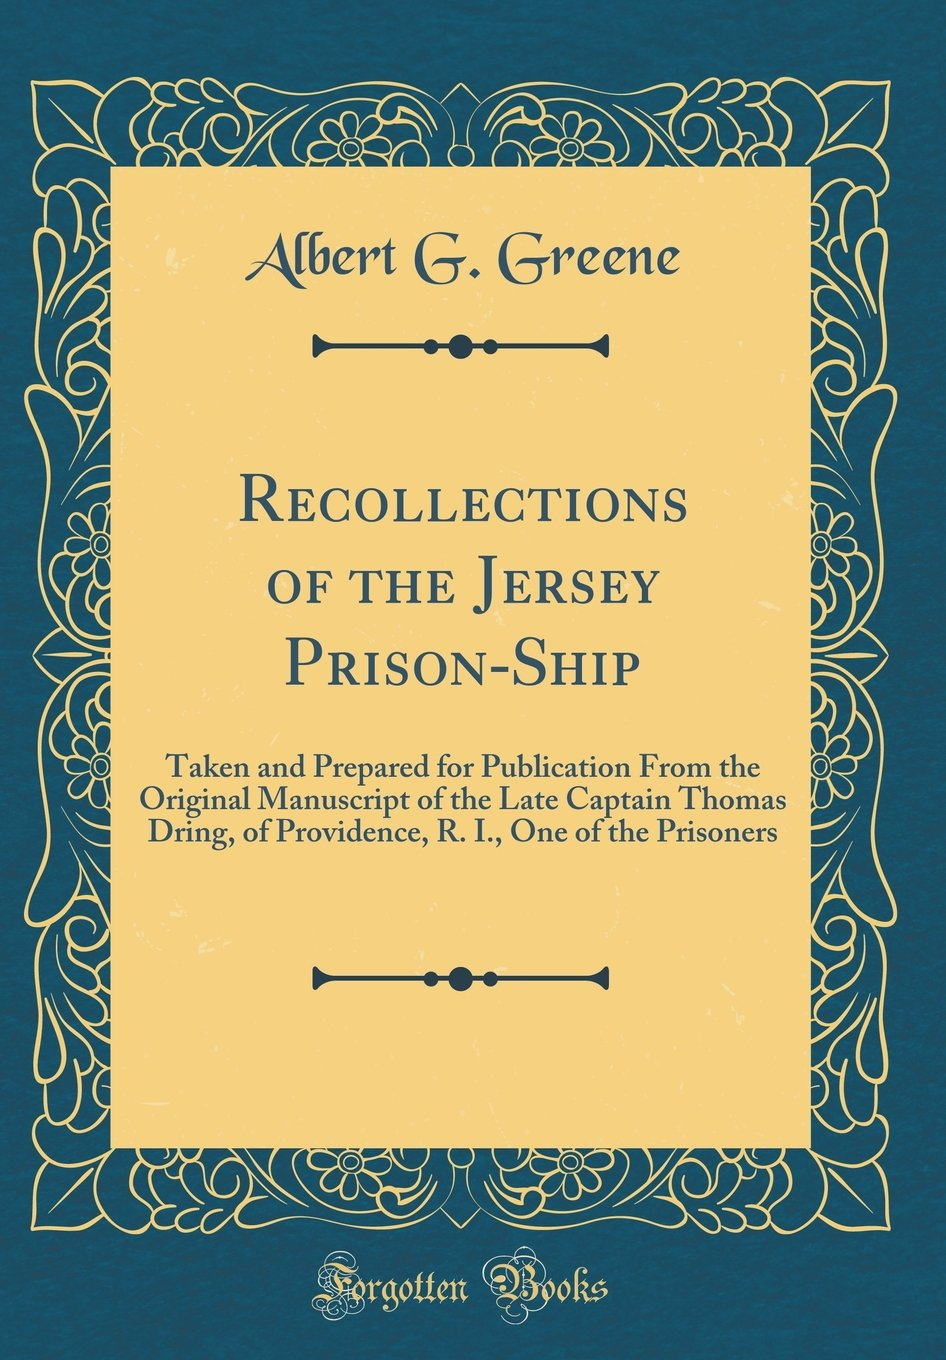 Read Online Recollections of the Jersey Prison-Ship: Taken and Prepared for Publication From the Original Manuscript of the Late Captain Thomas Dring, of Providence, R. I., One of the Prisoners (Classic Reprint) PDF